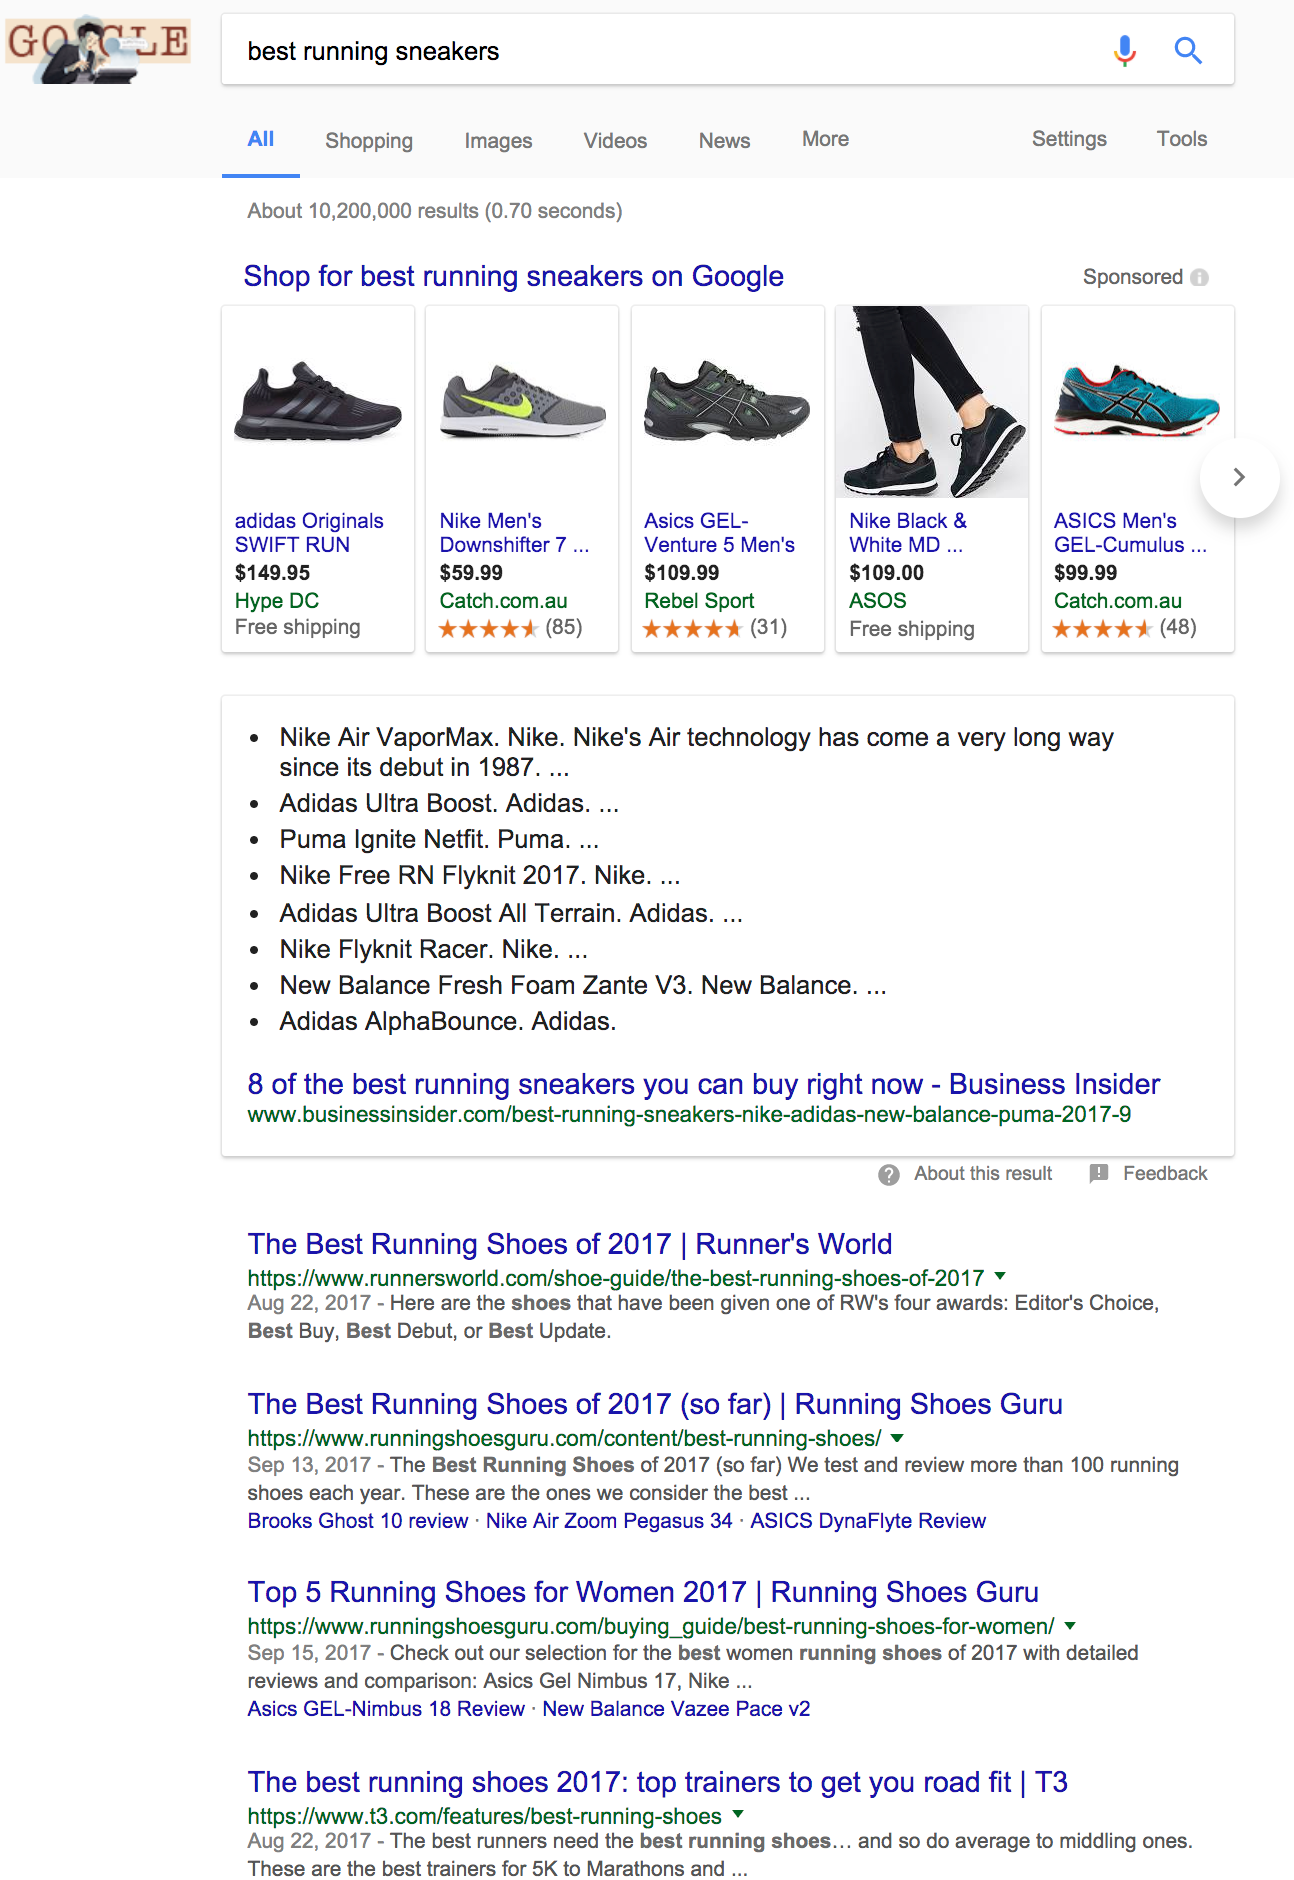 sneaker-reviews-serp-example